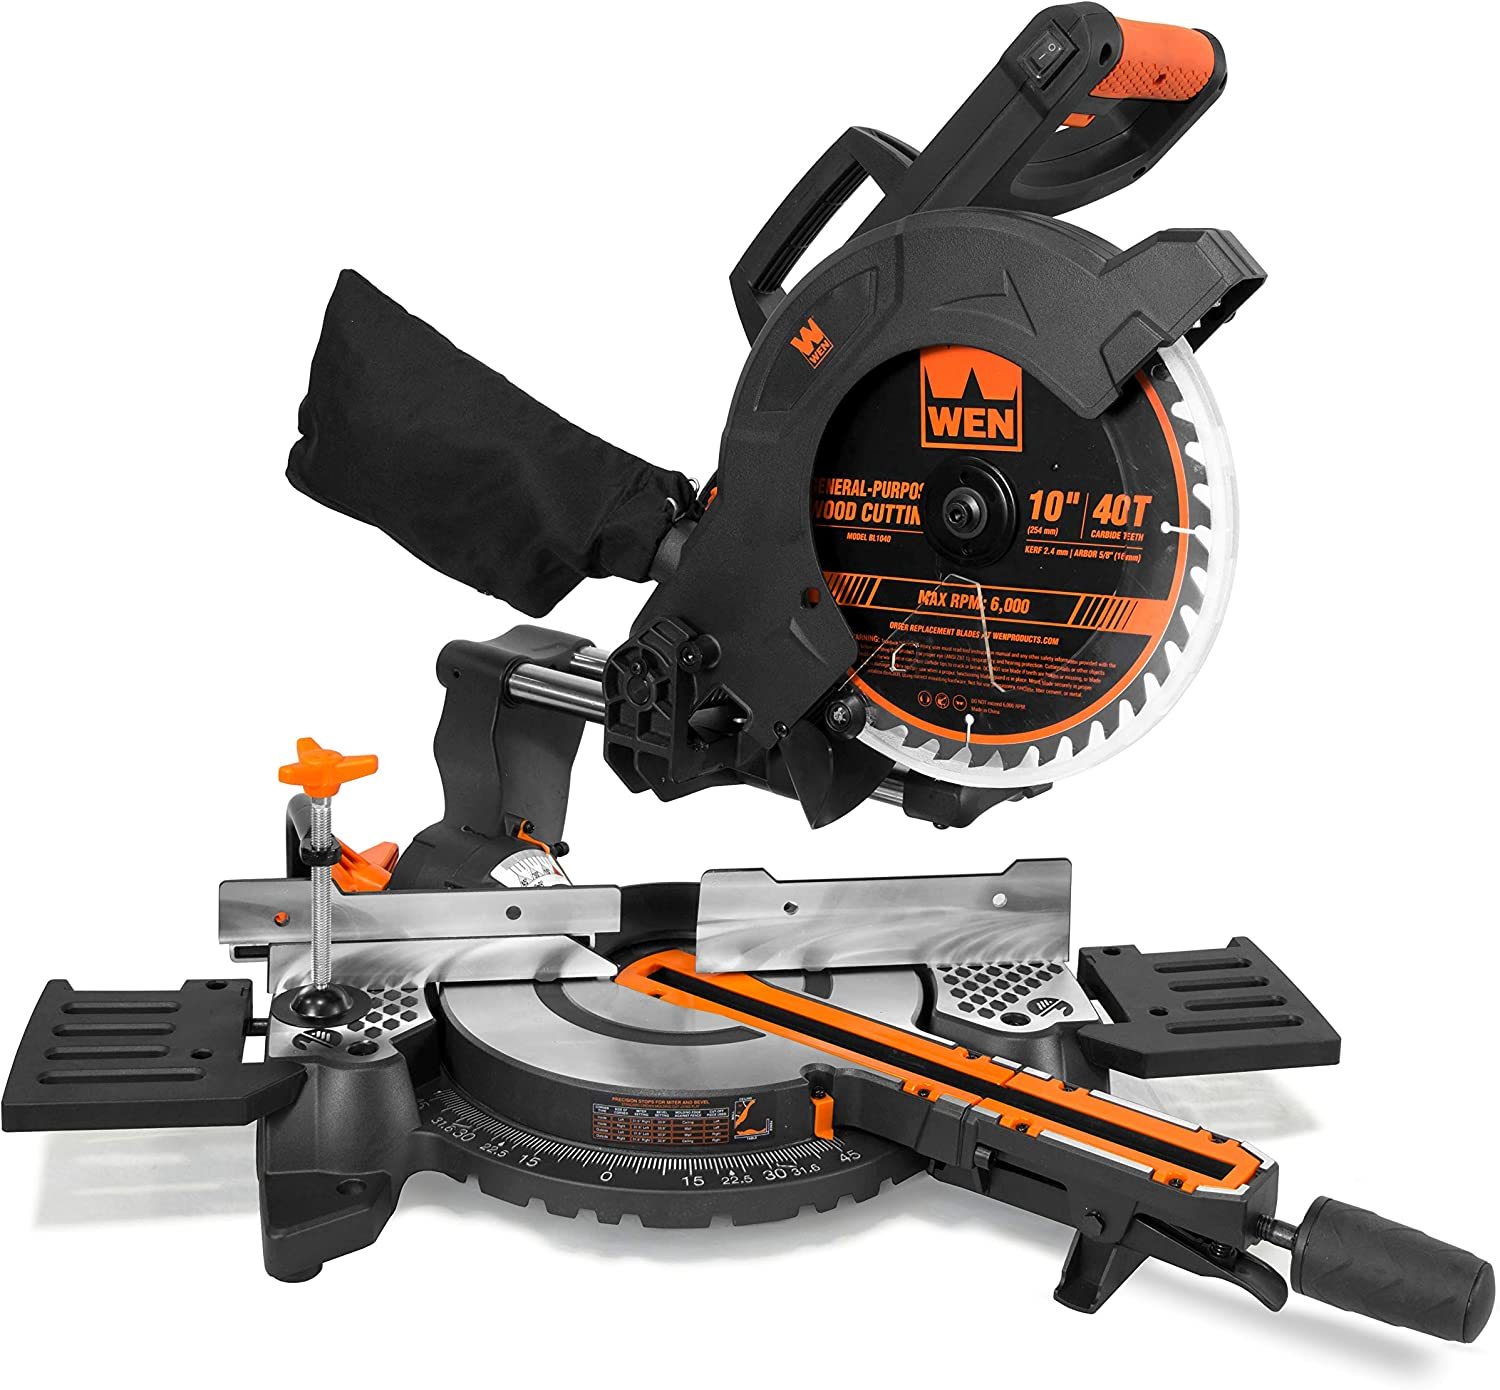 WEN MM1011 Compact Sliding Compound Miter Saw